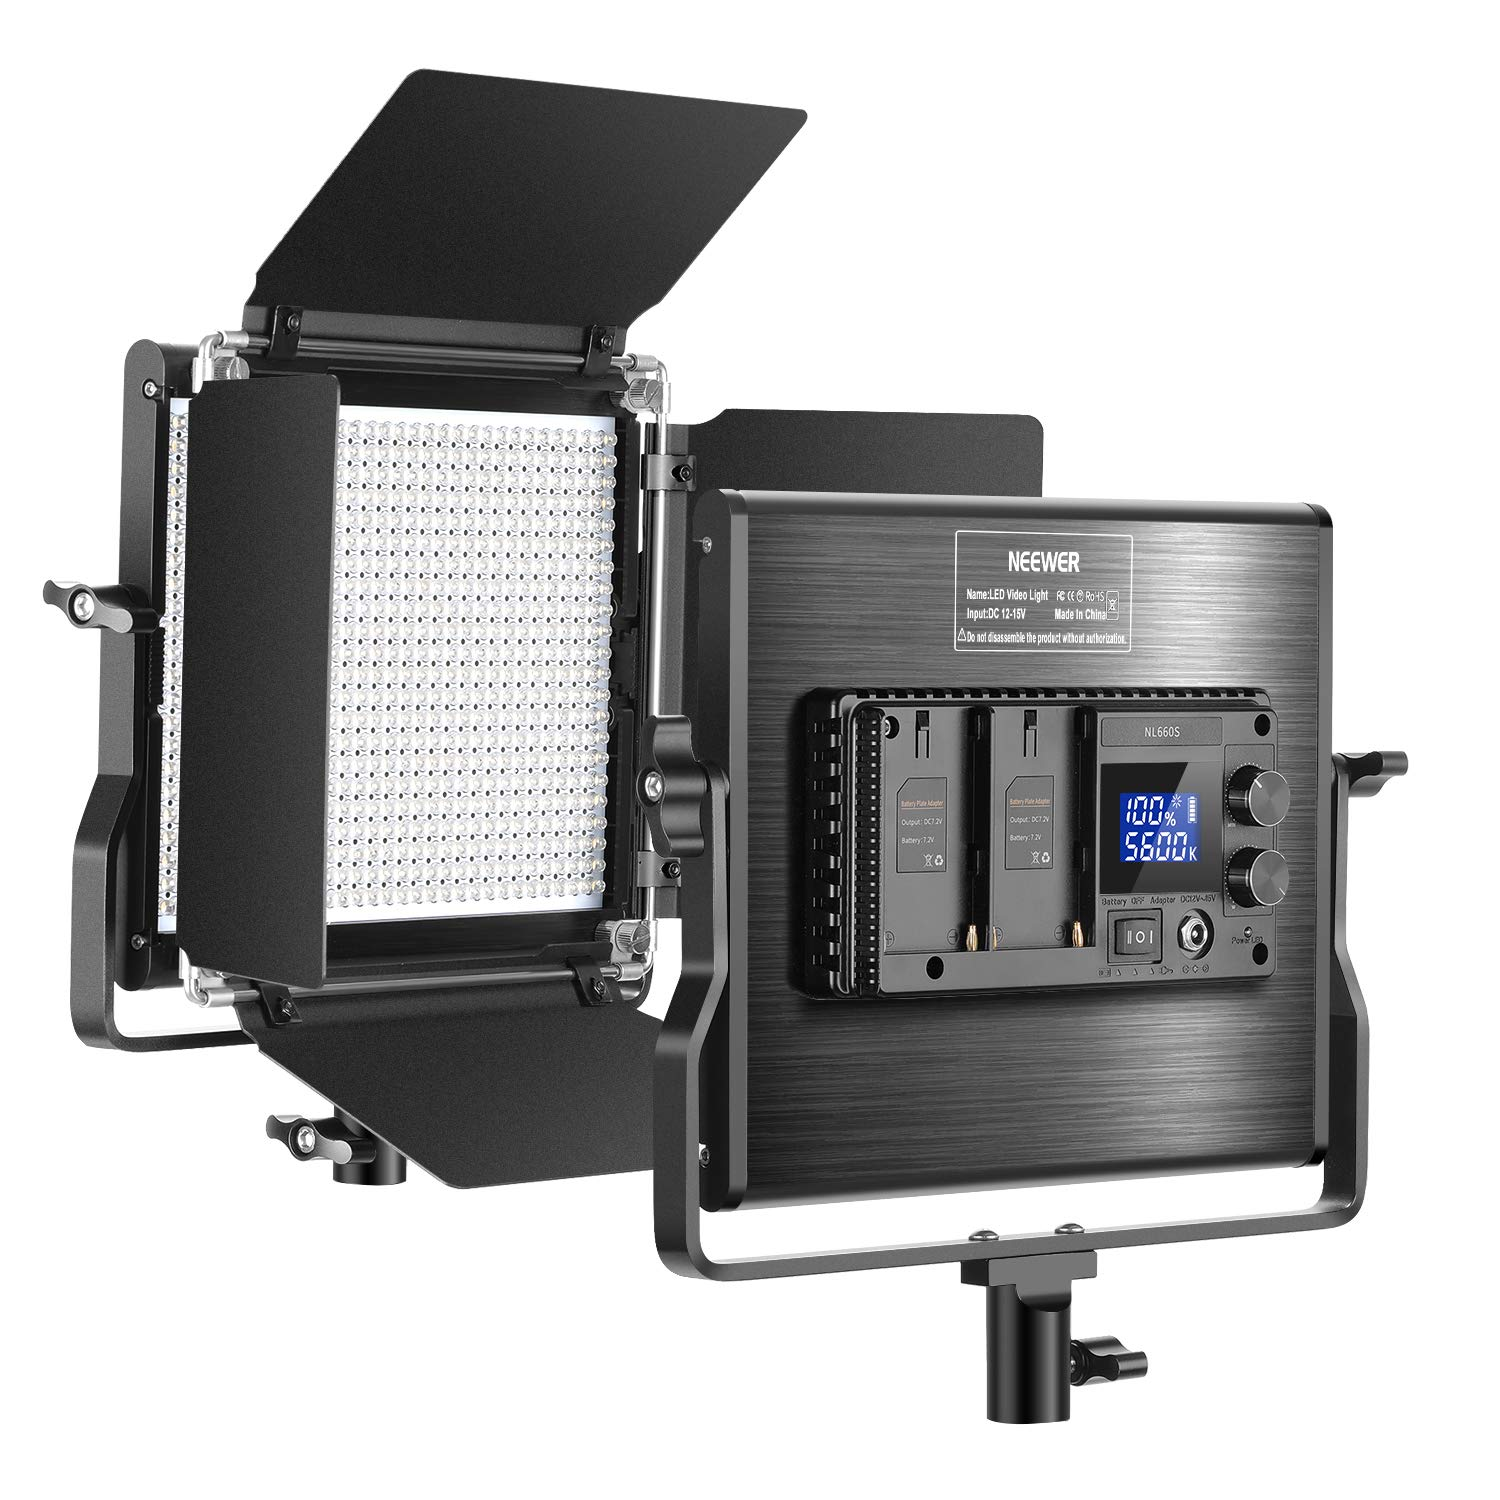 Neewer Upgraded 660 LED Video Light Dimmable Bi-Color LED Panel with LCD Screen for Studio, YouTube Video Shooting Product Photography, 660 Beads CRI 96+, Durable Metal with U Bracket and Barndoor